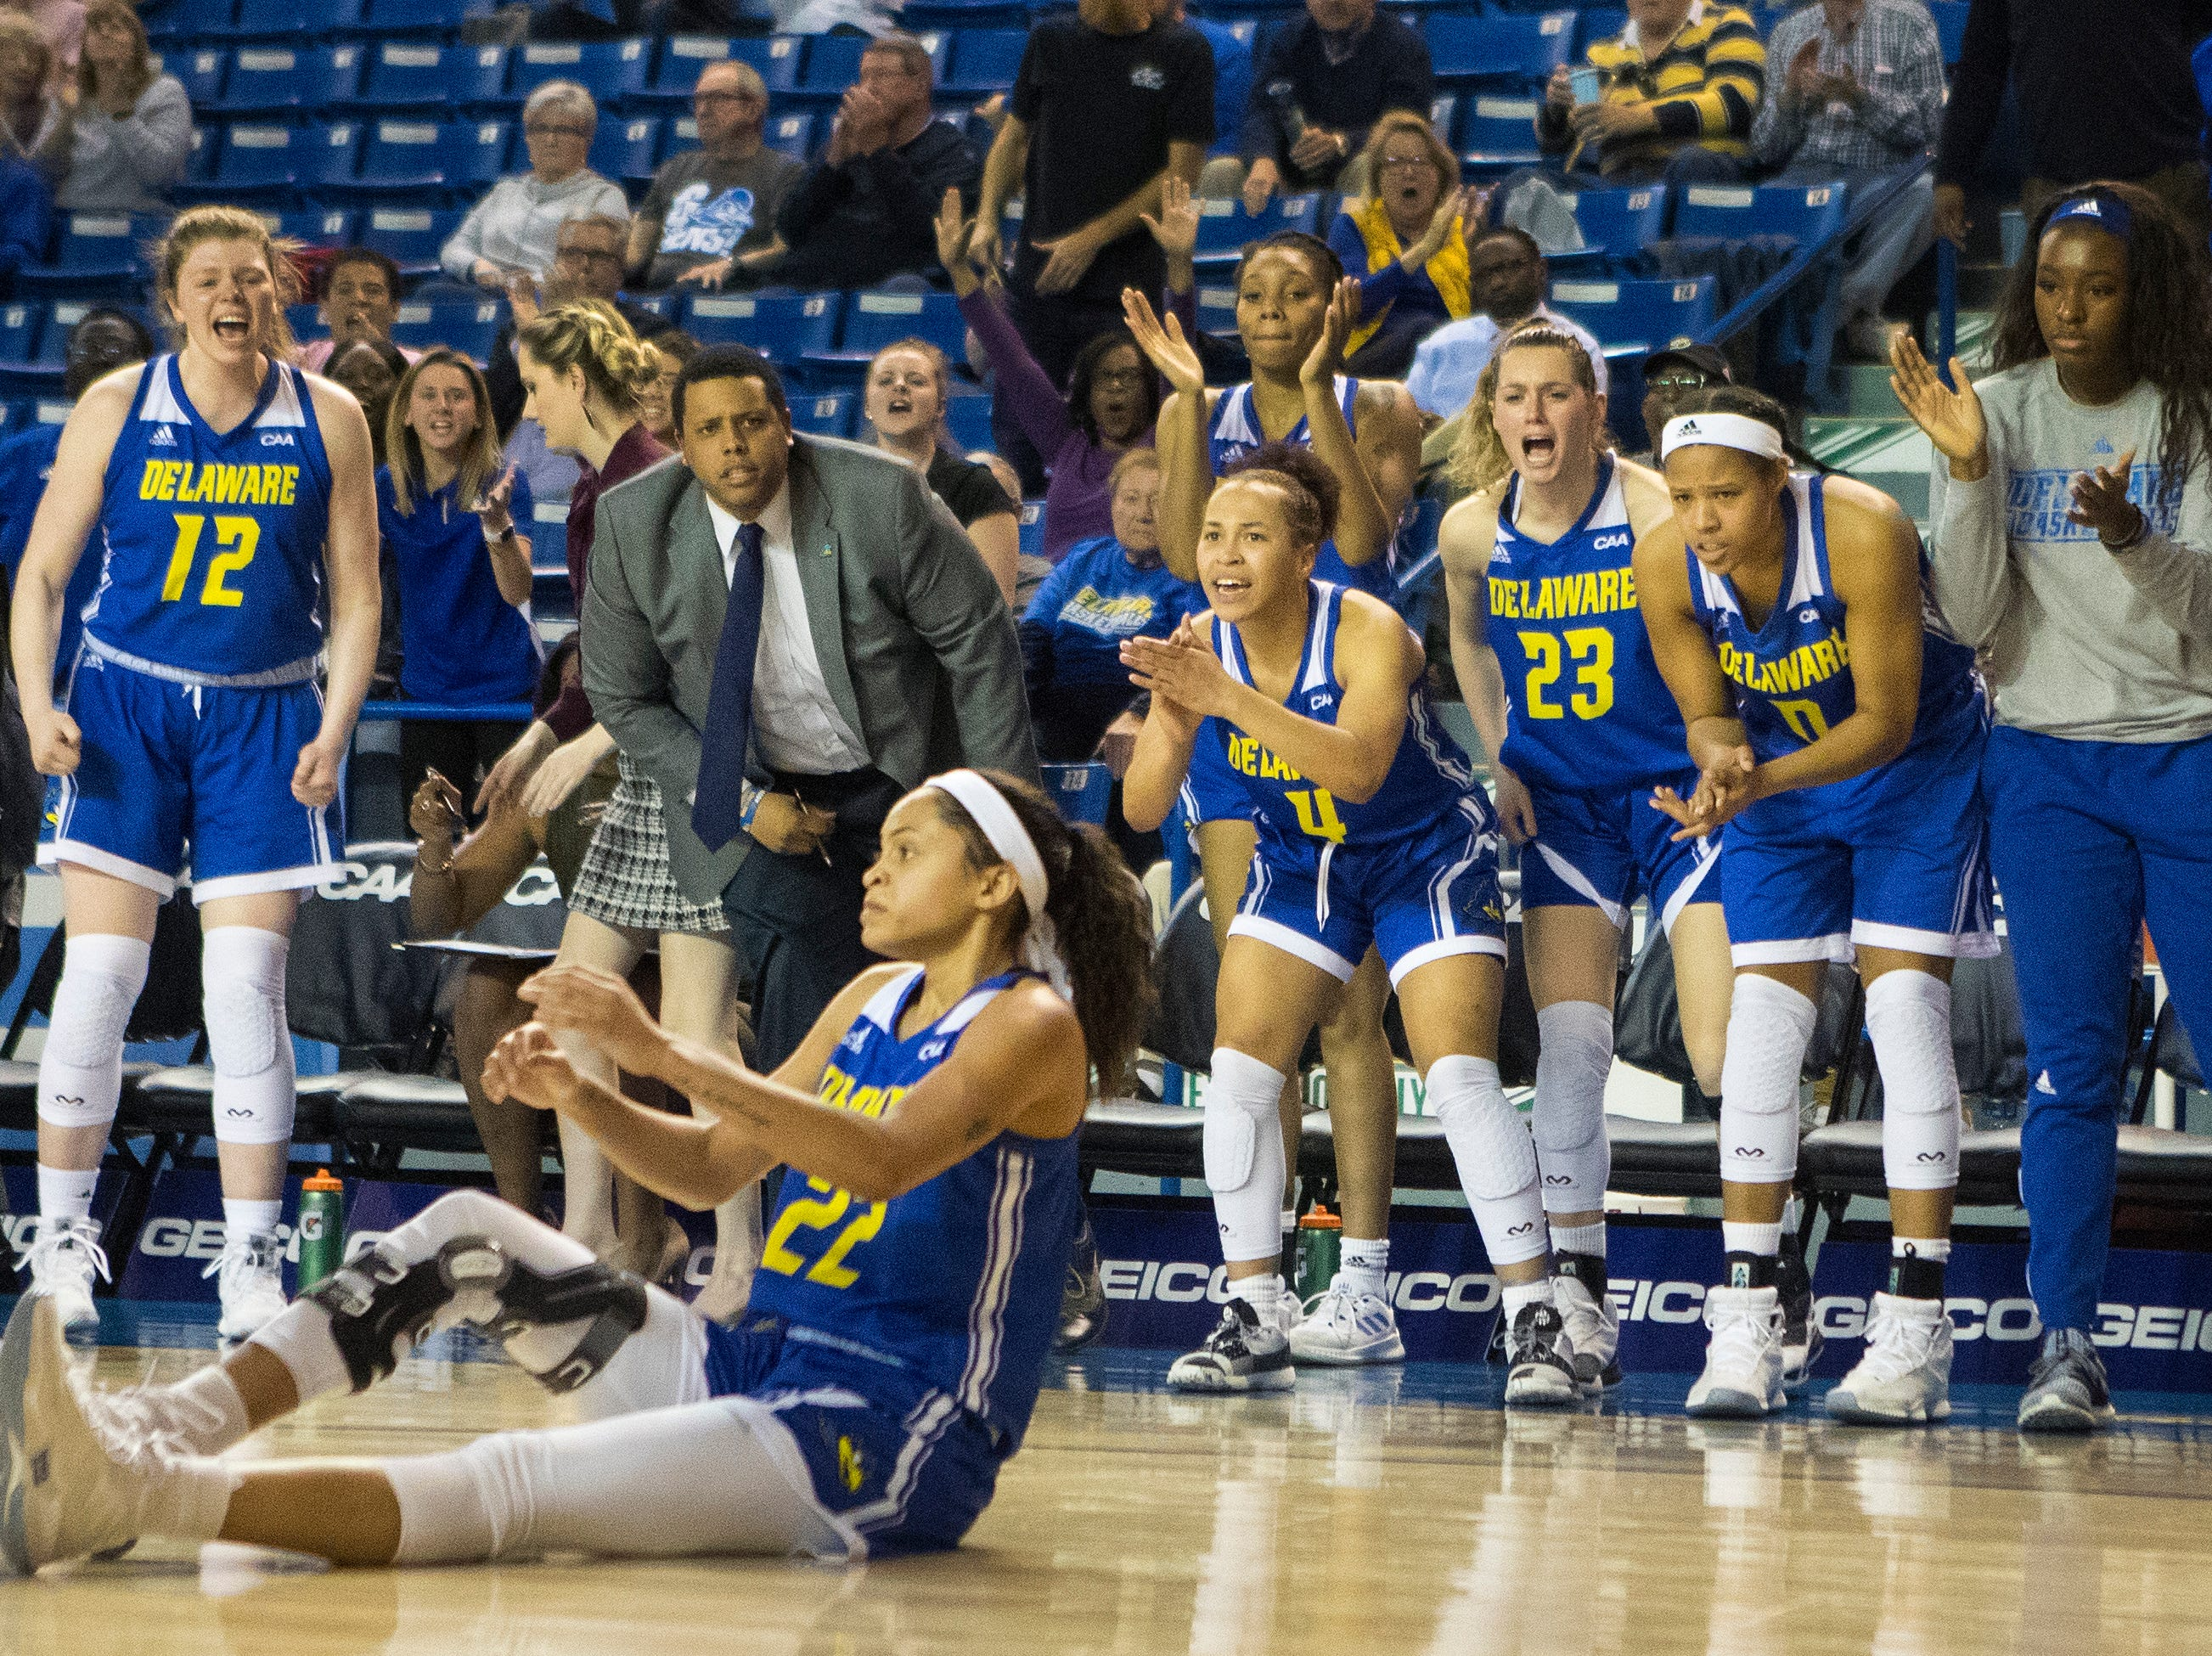 The Delaware bench react to a ref's call in their favor Thursday in the CAA quarterfinals against Towson. Towson defeated Delaware 59-49.